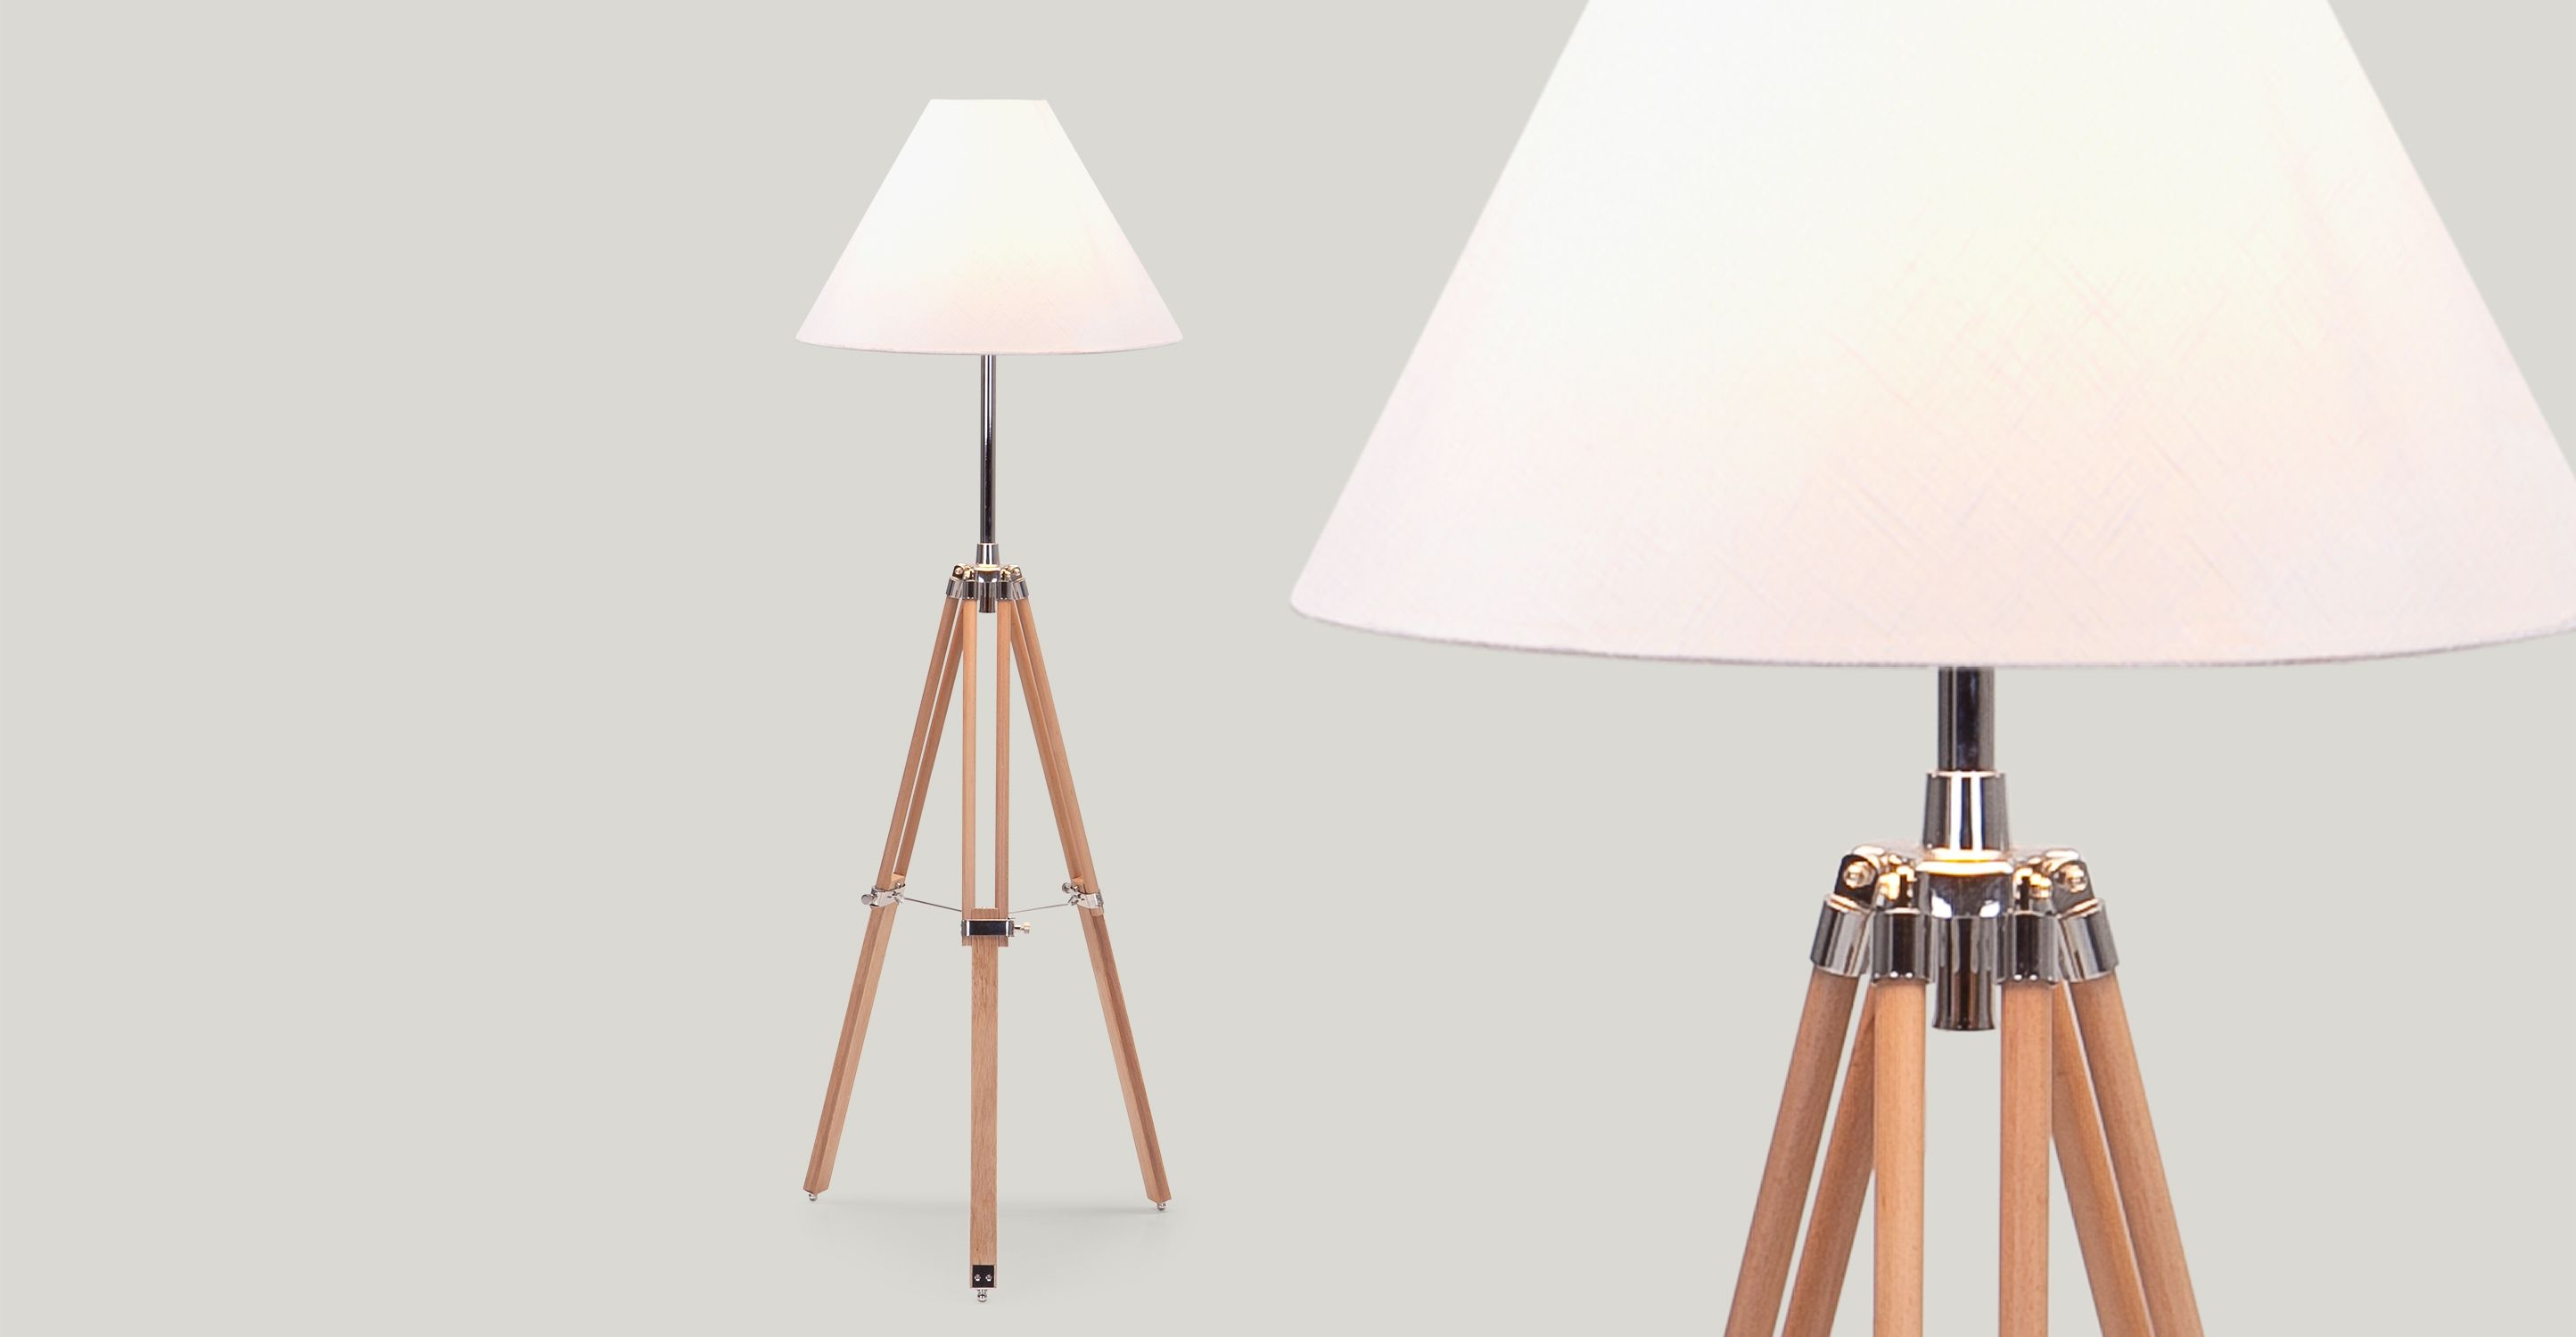 Navy driepoot staande lamp in naturel hout made new house